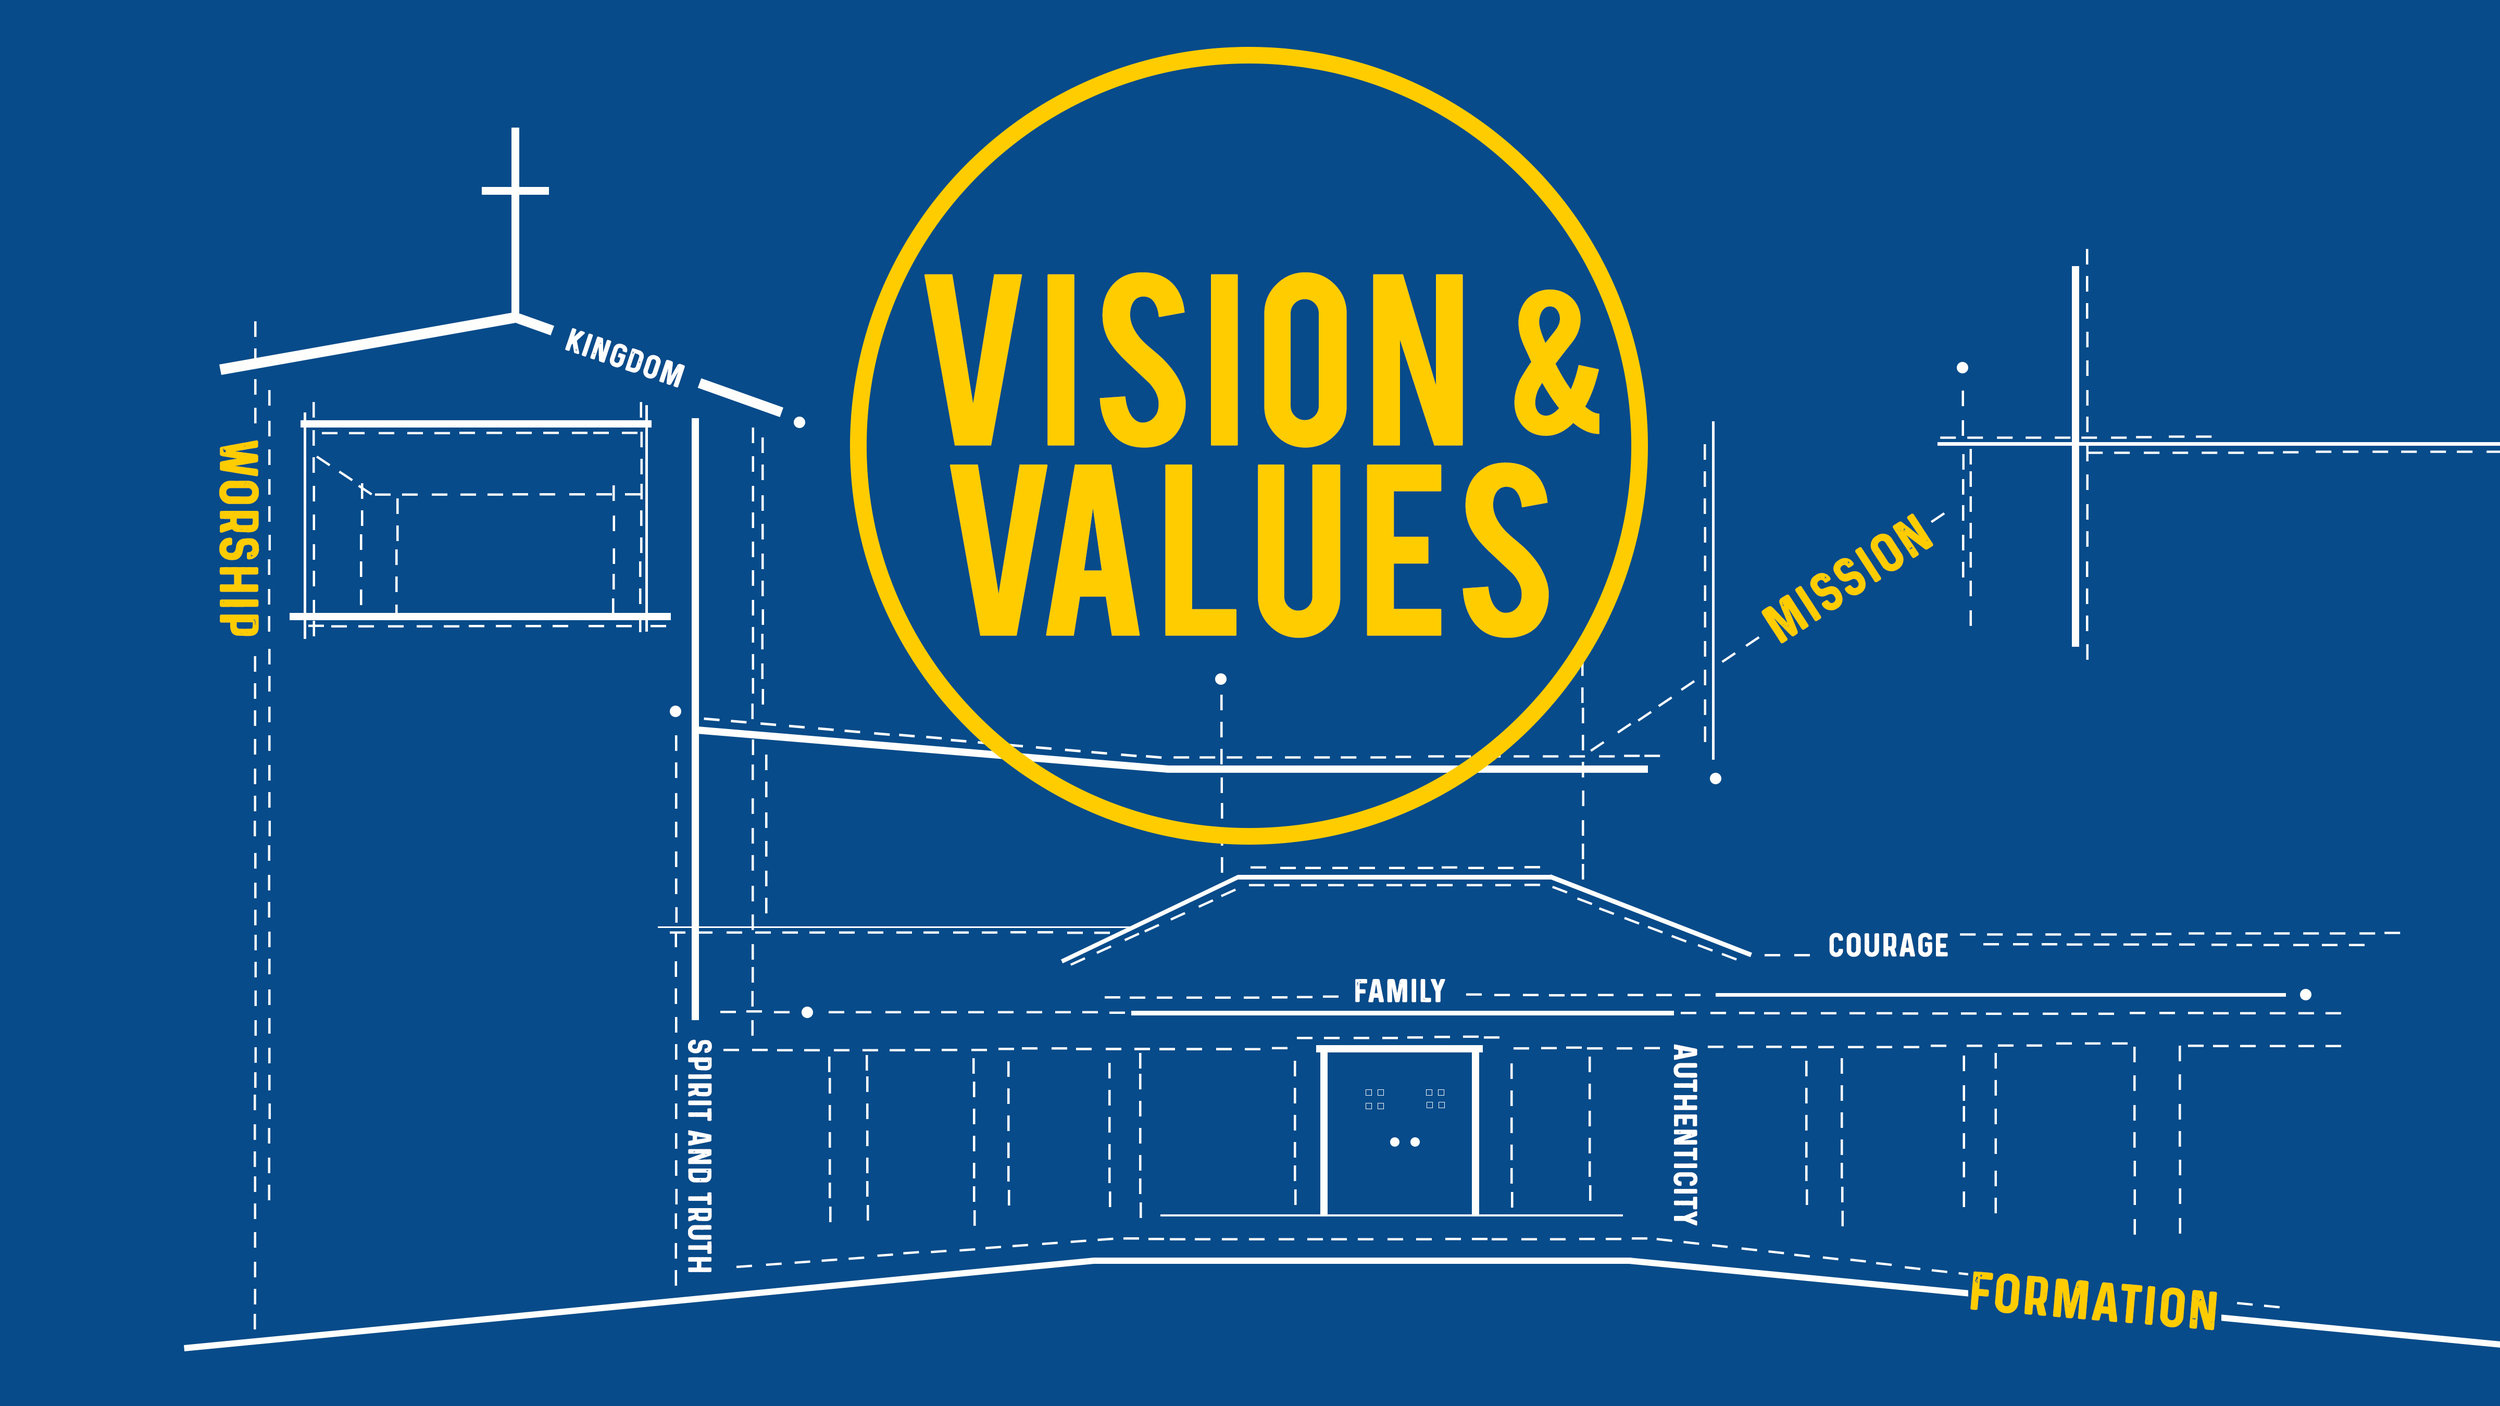 Vision and Values OLCC.jpg